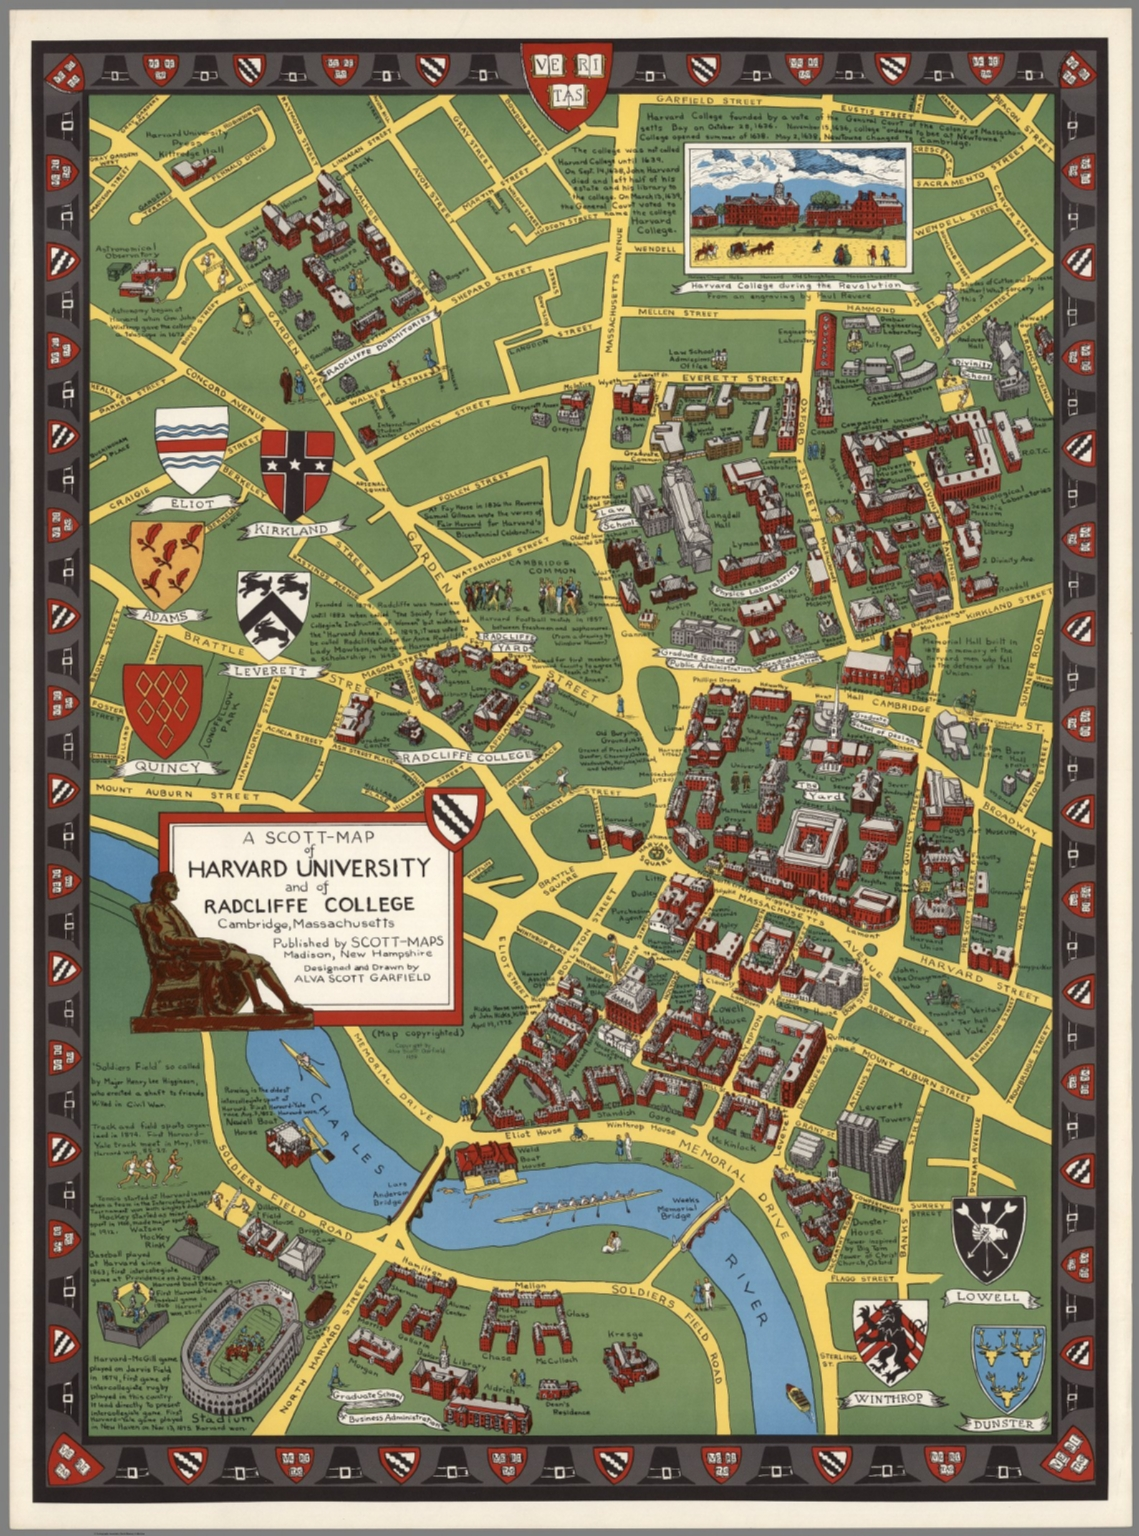 A ScottMap of Harvard University and of Radcliffe College